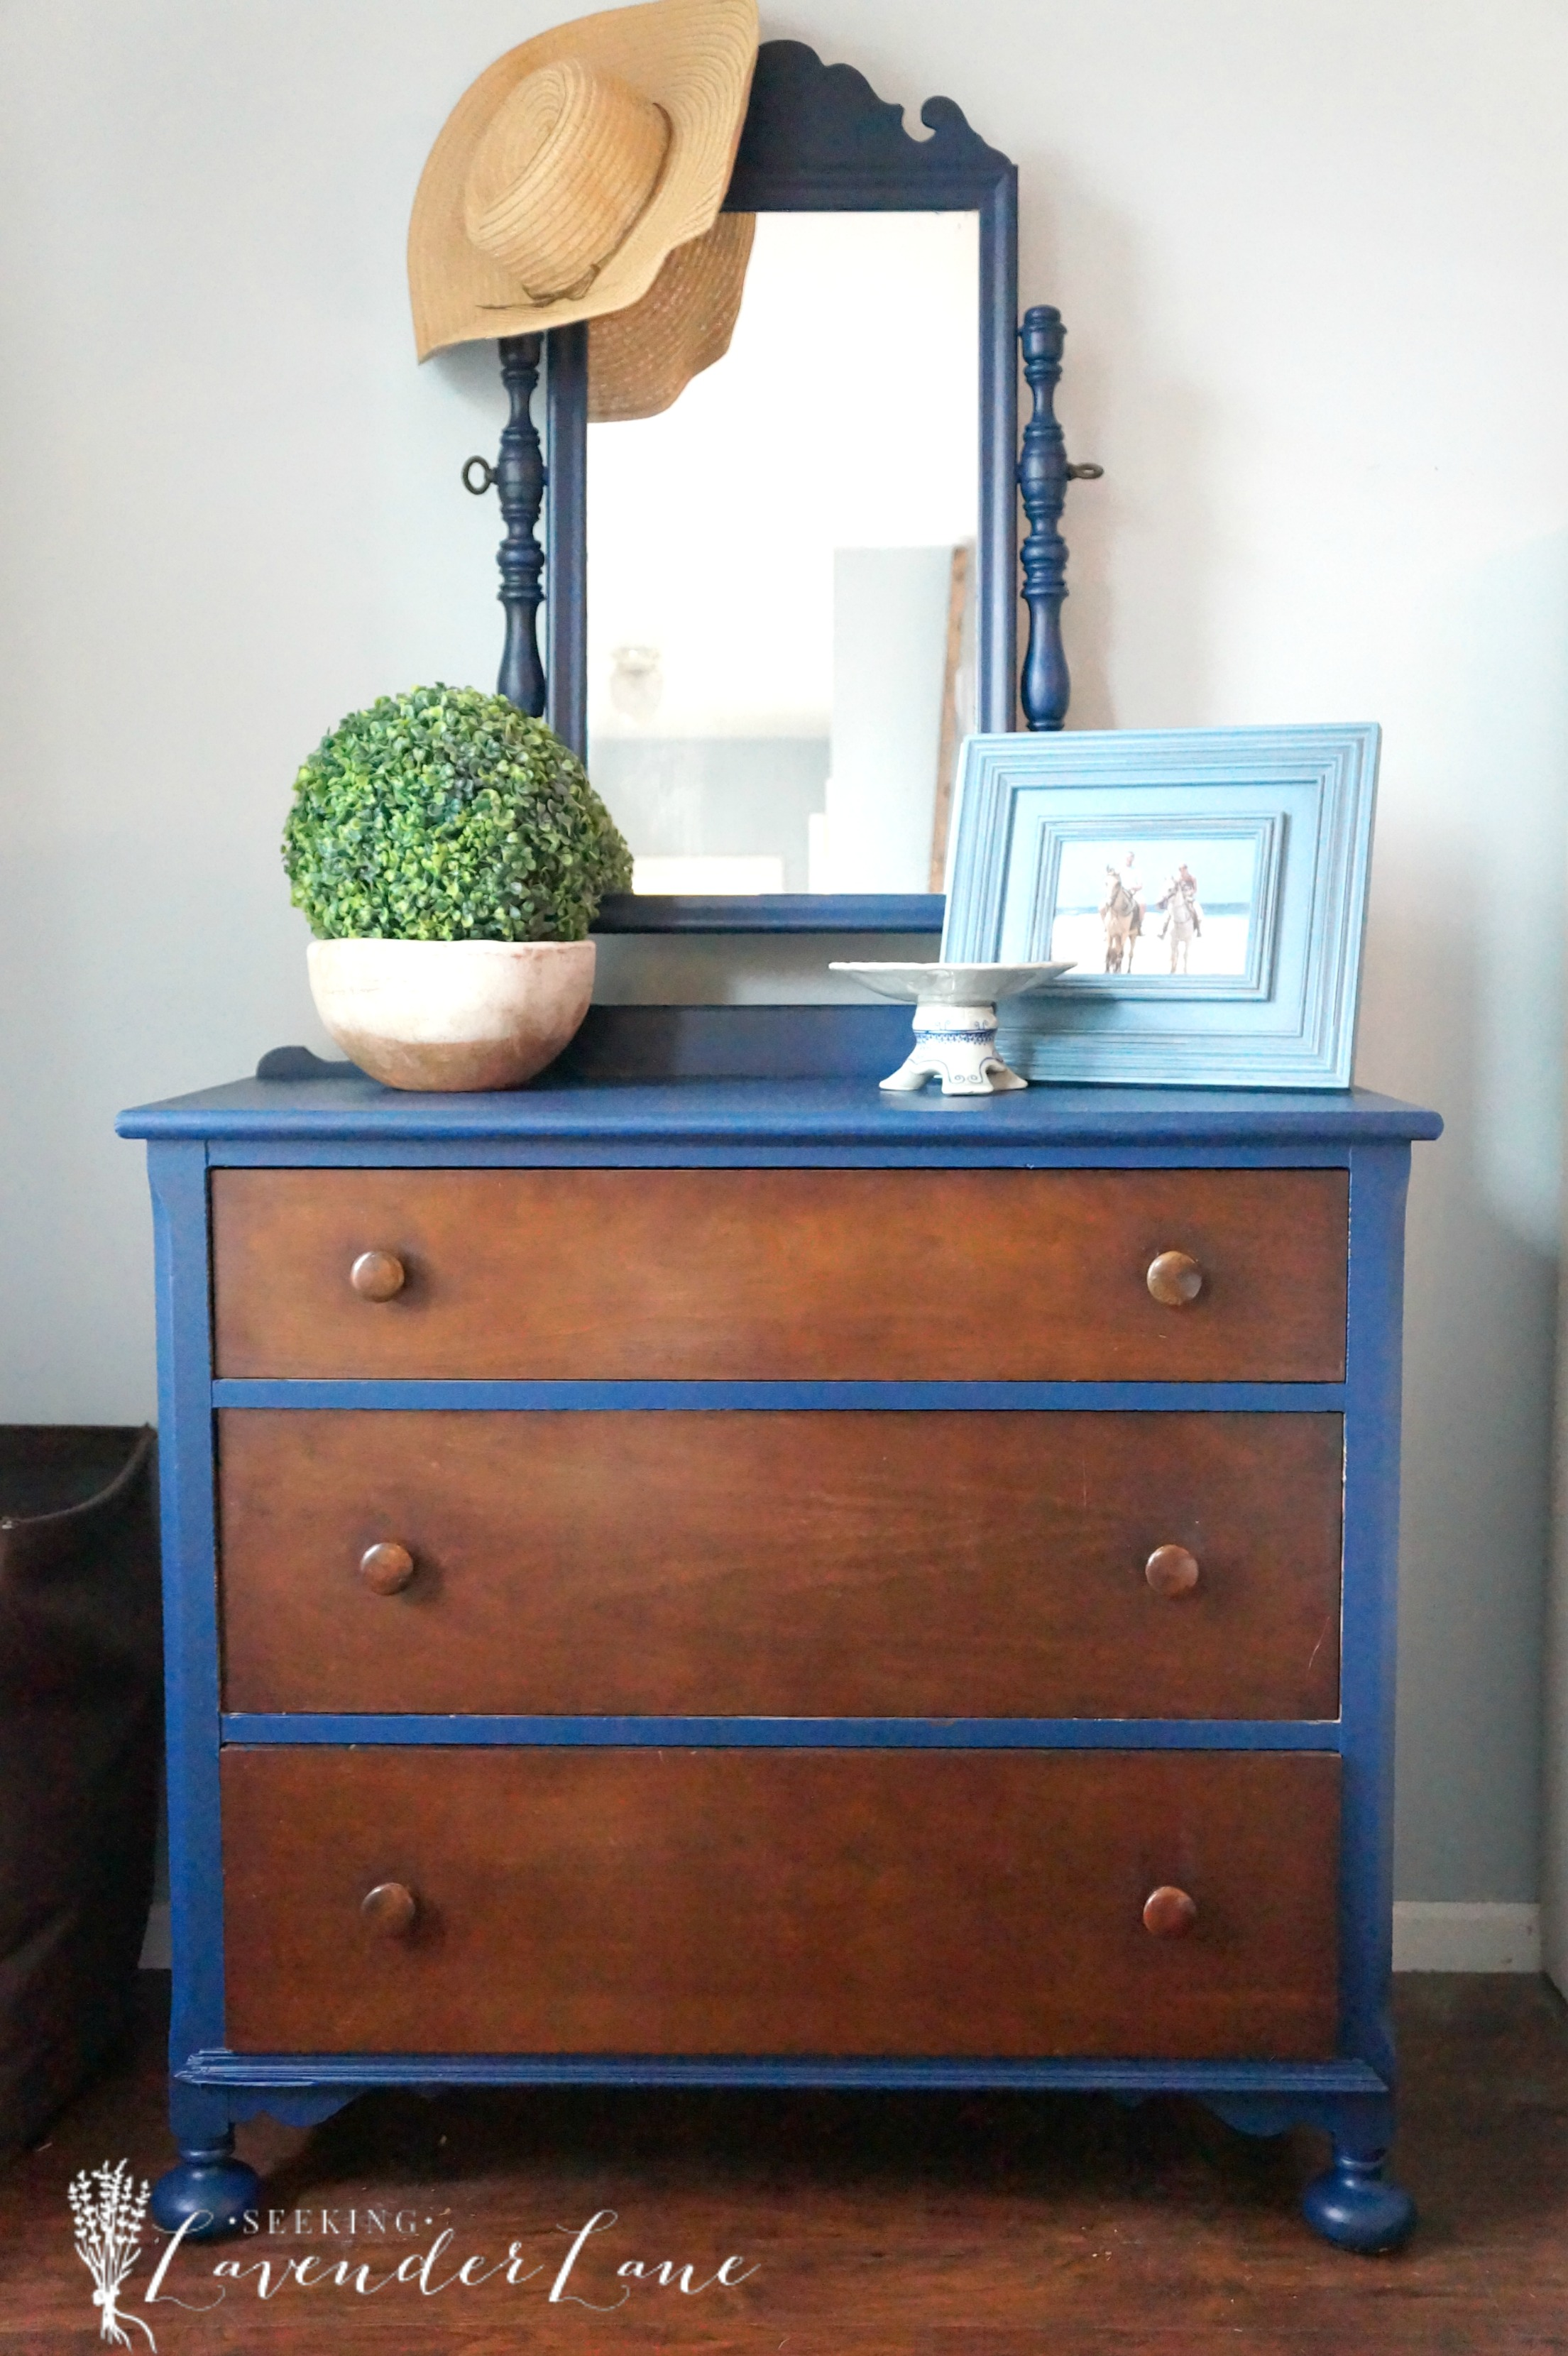 So I Love The Pop Of Color Added To Dresser Decided Test Out Drawers As Is And Kind Them For Now Will Probably Leave